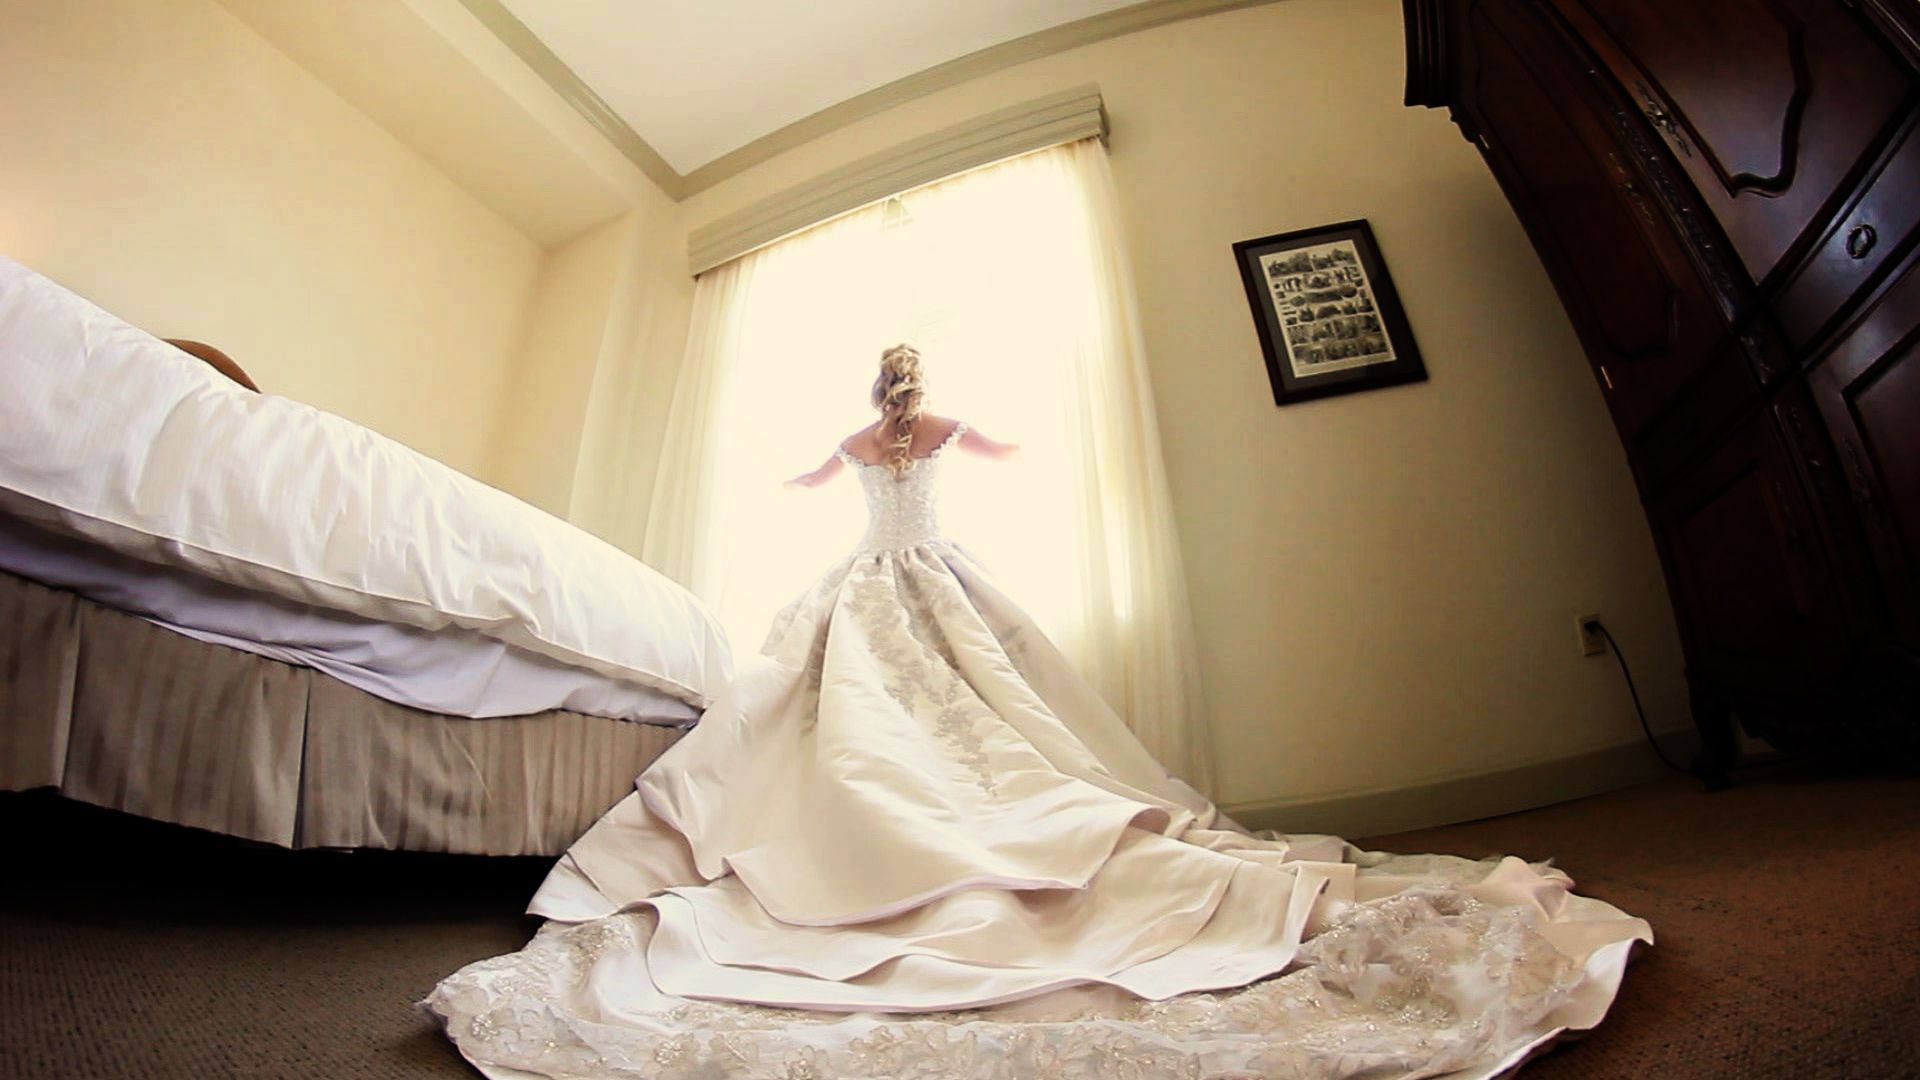 bride dress biltmore hotel miami, Wedding Videography, Cinematography  http://diegopocovi.com/wedding-cinematography